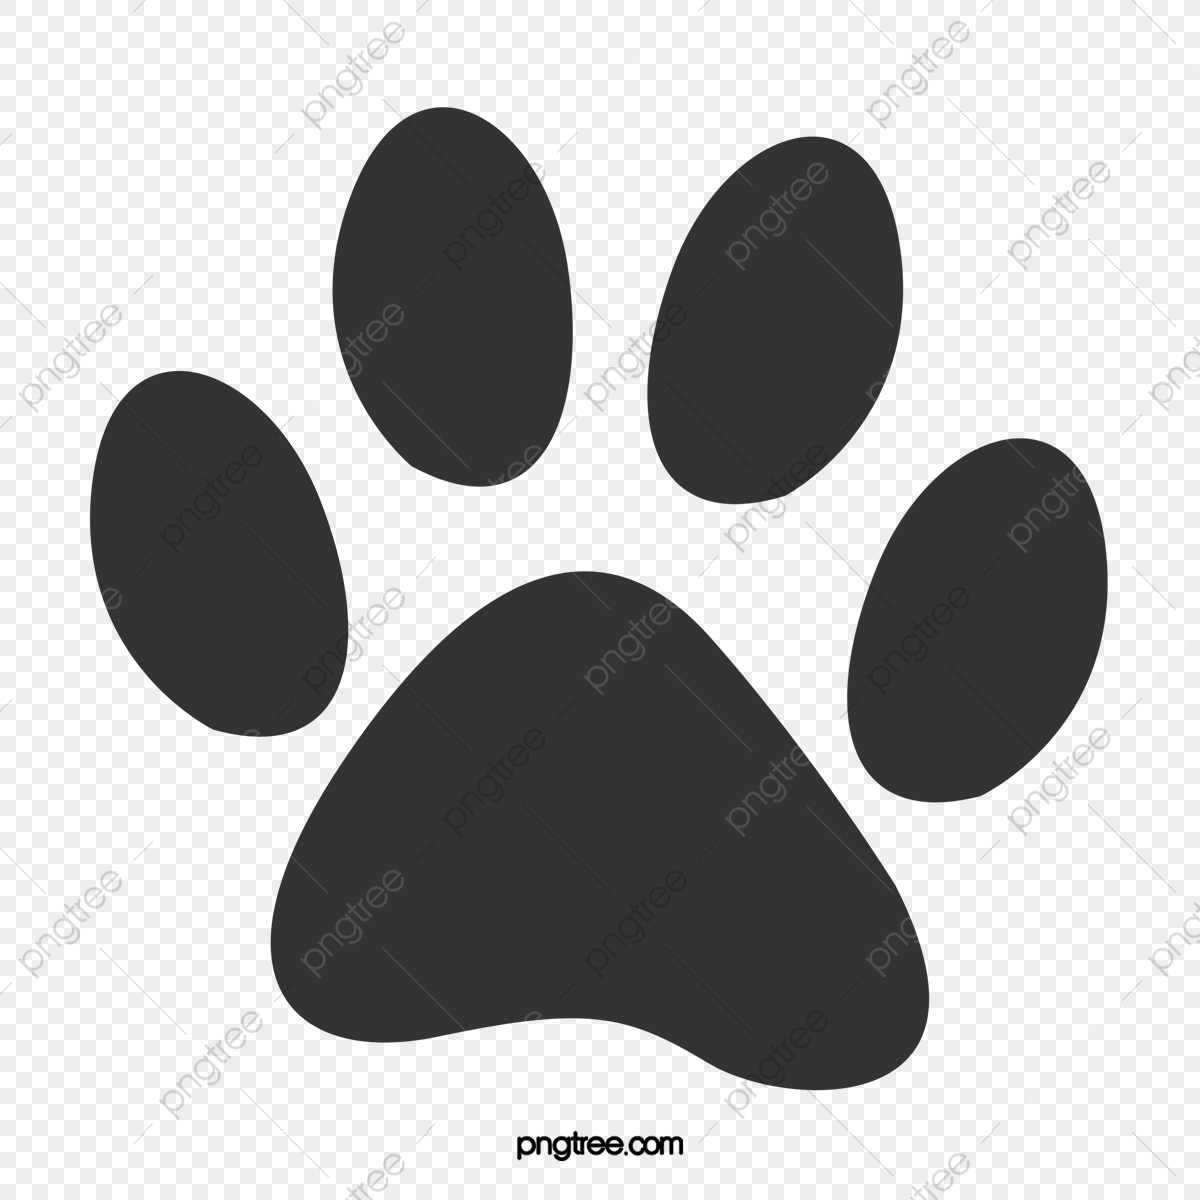 Paw Prints Png Images Vector And Psd Files Free Download On Pngtree Available in png and vector. https pngtree com freepng black hand painted 5054119 html